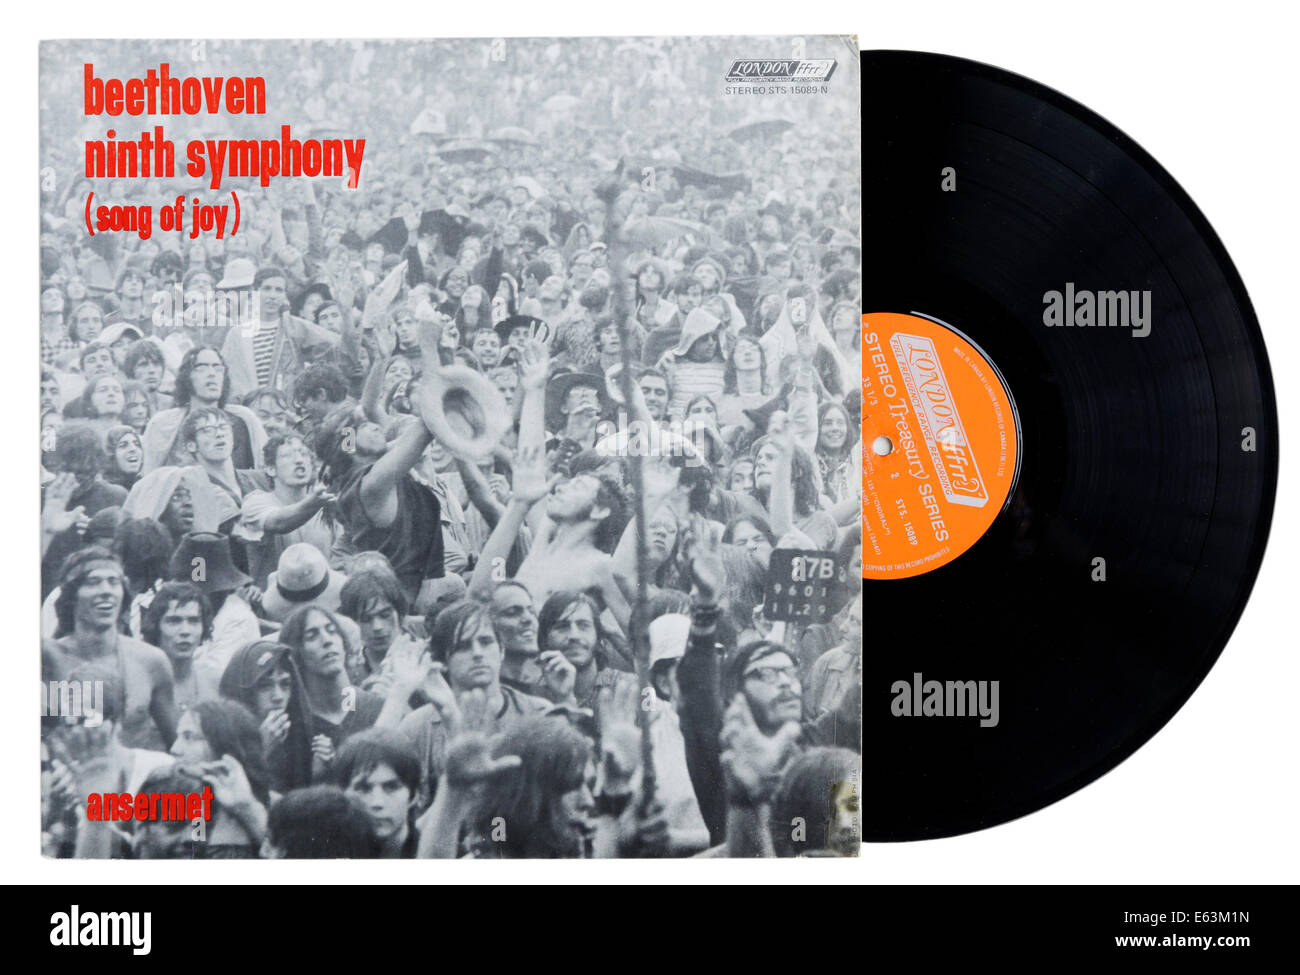 Beethoven's 9th on vinyl - Stock Image